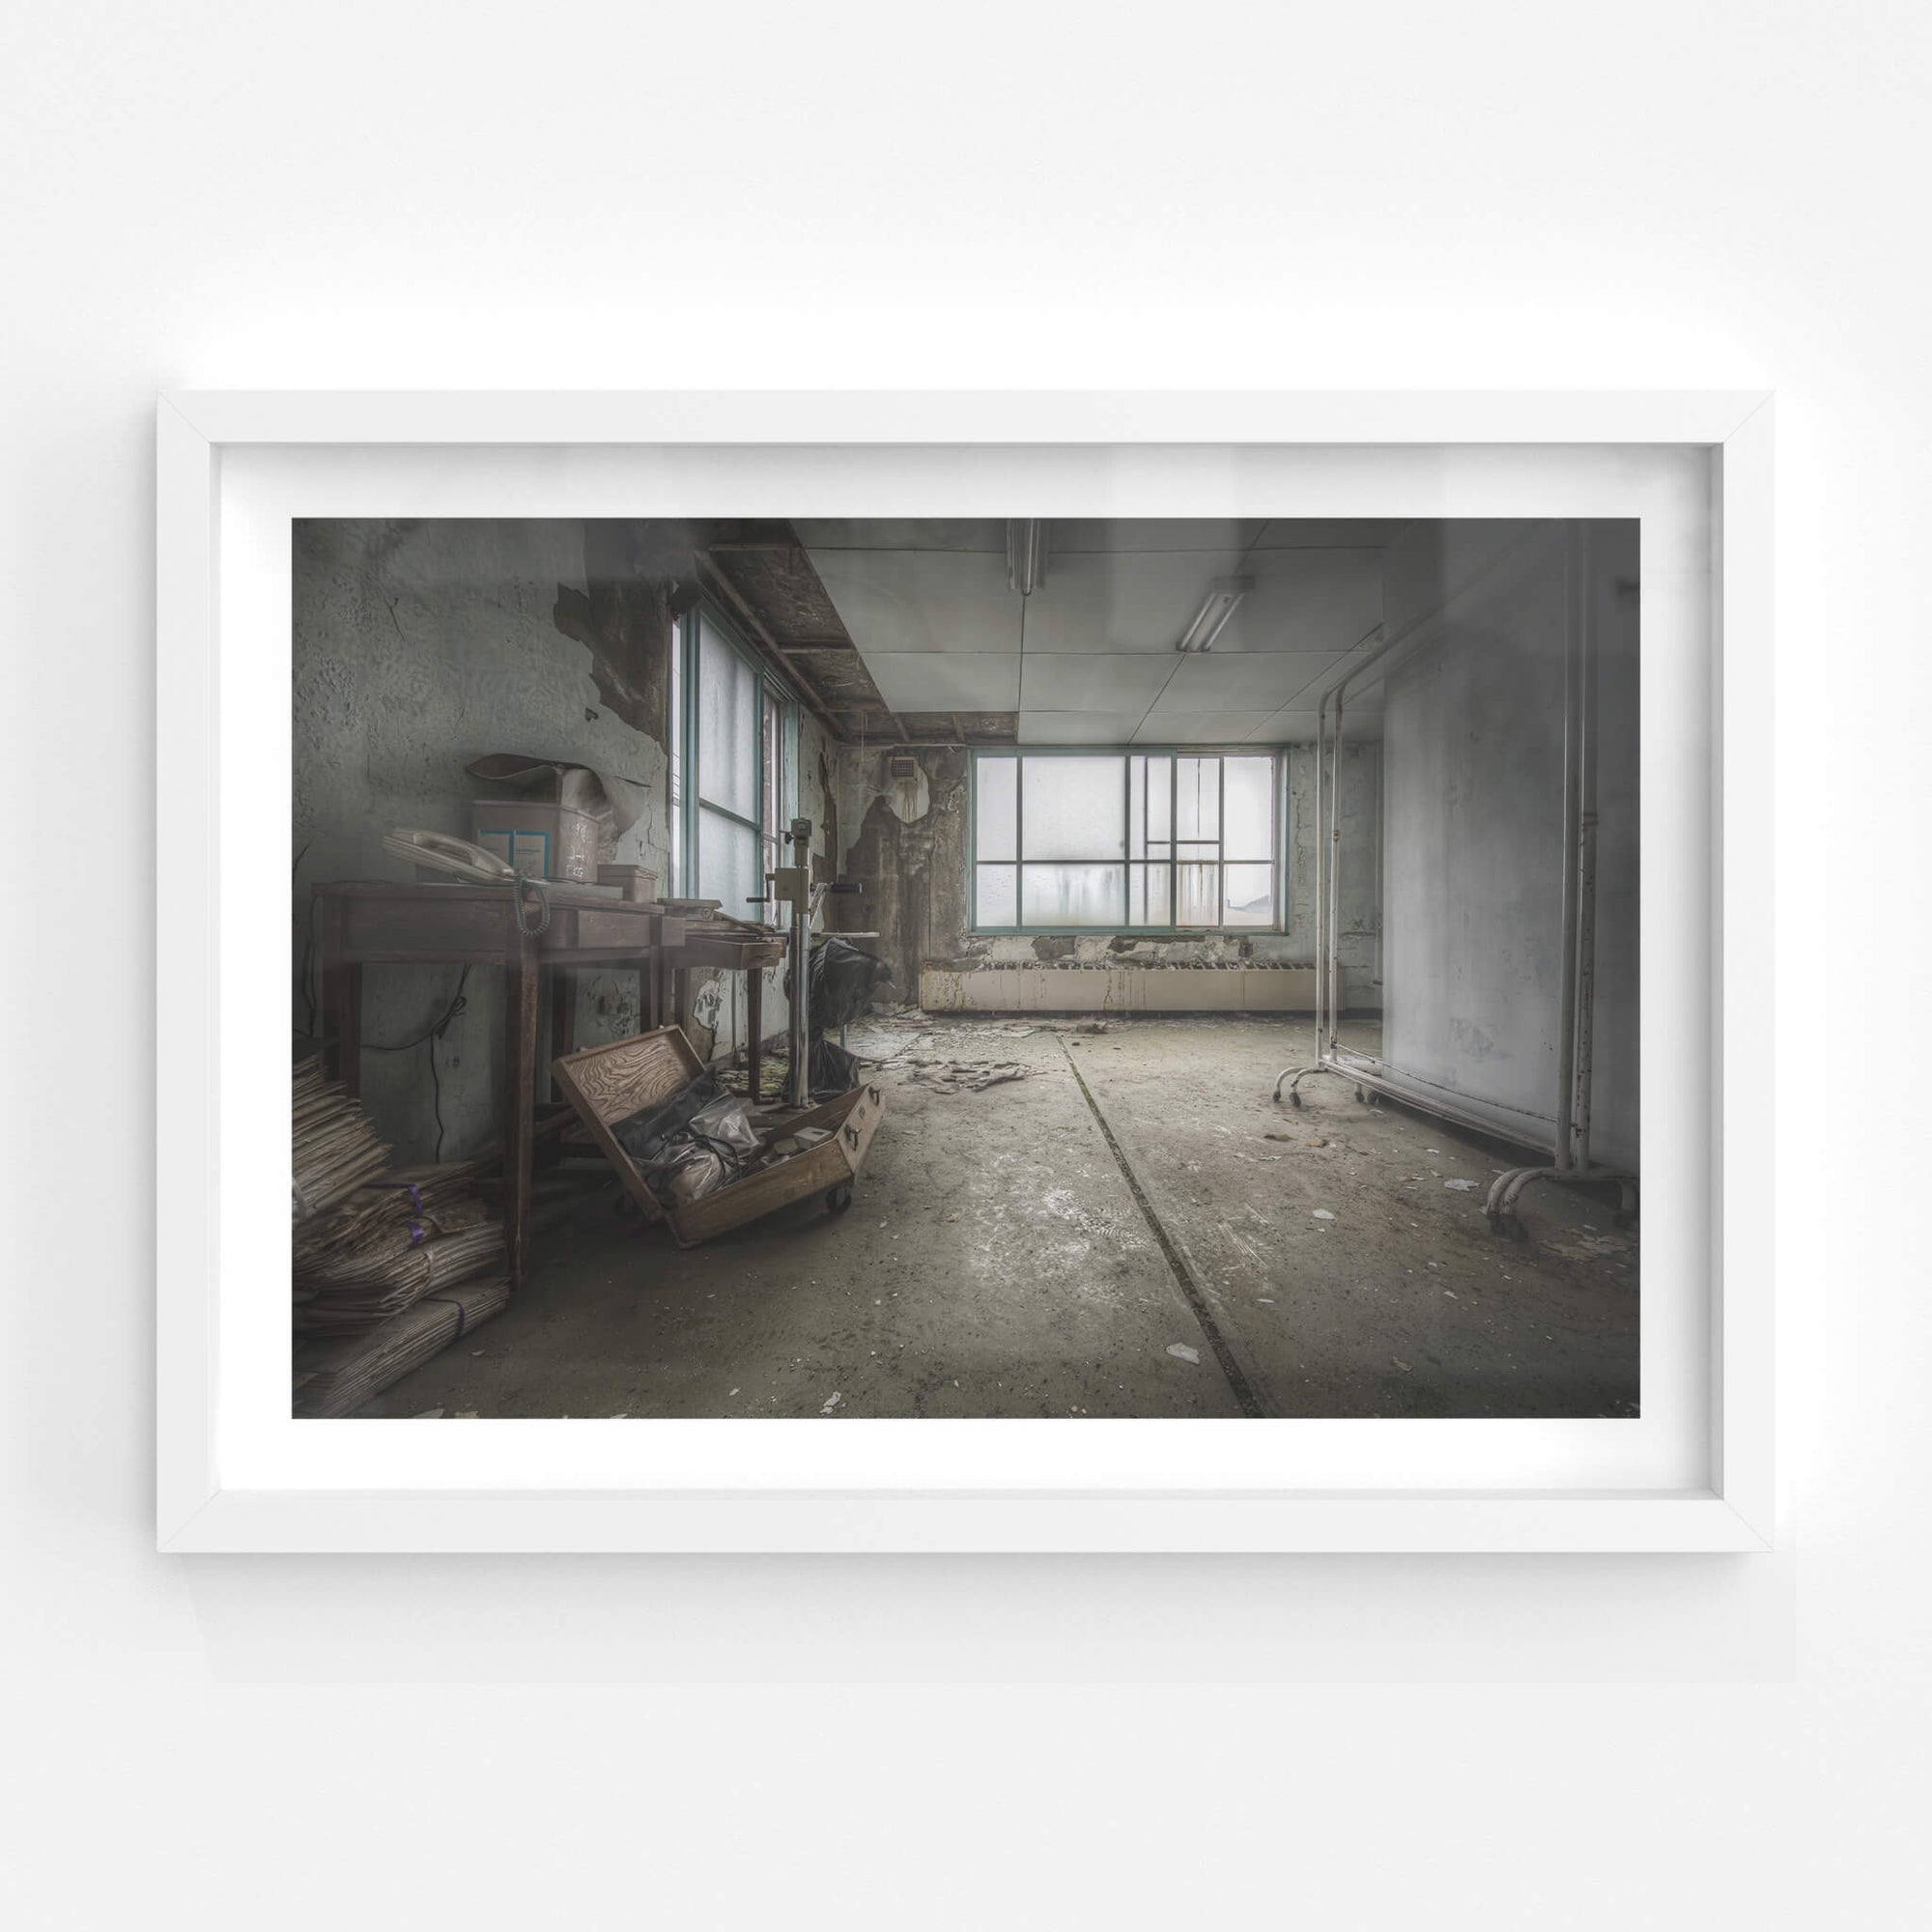 Drying Room | Kuwashima Hospital Fine Art Print - Lost Collective Shop